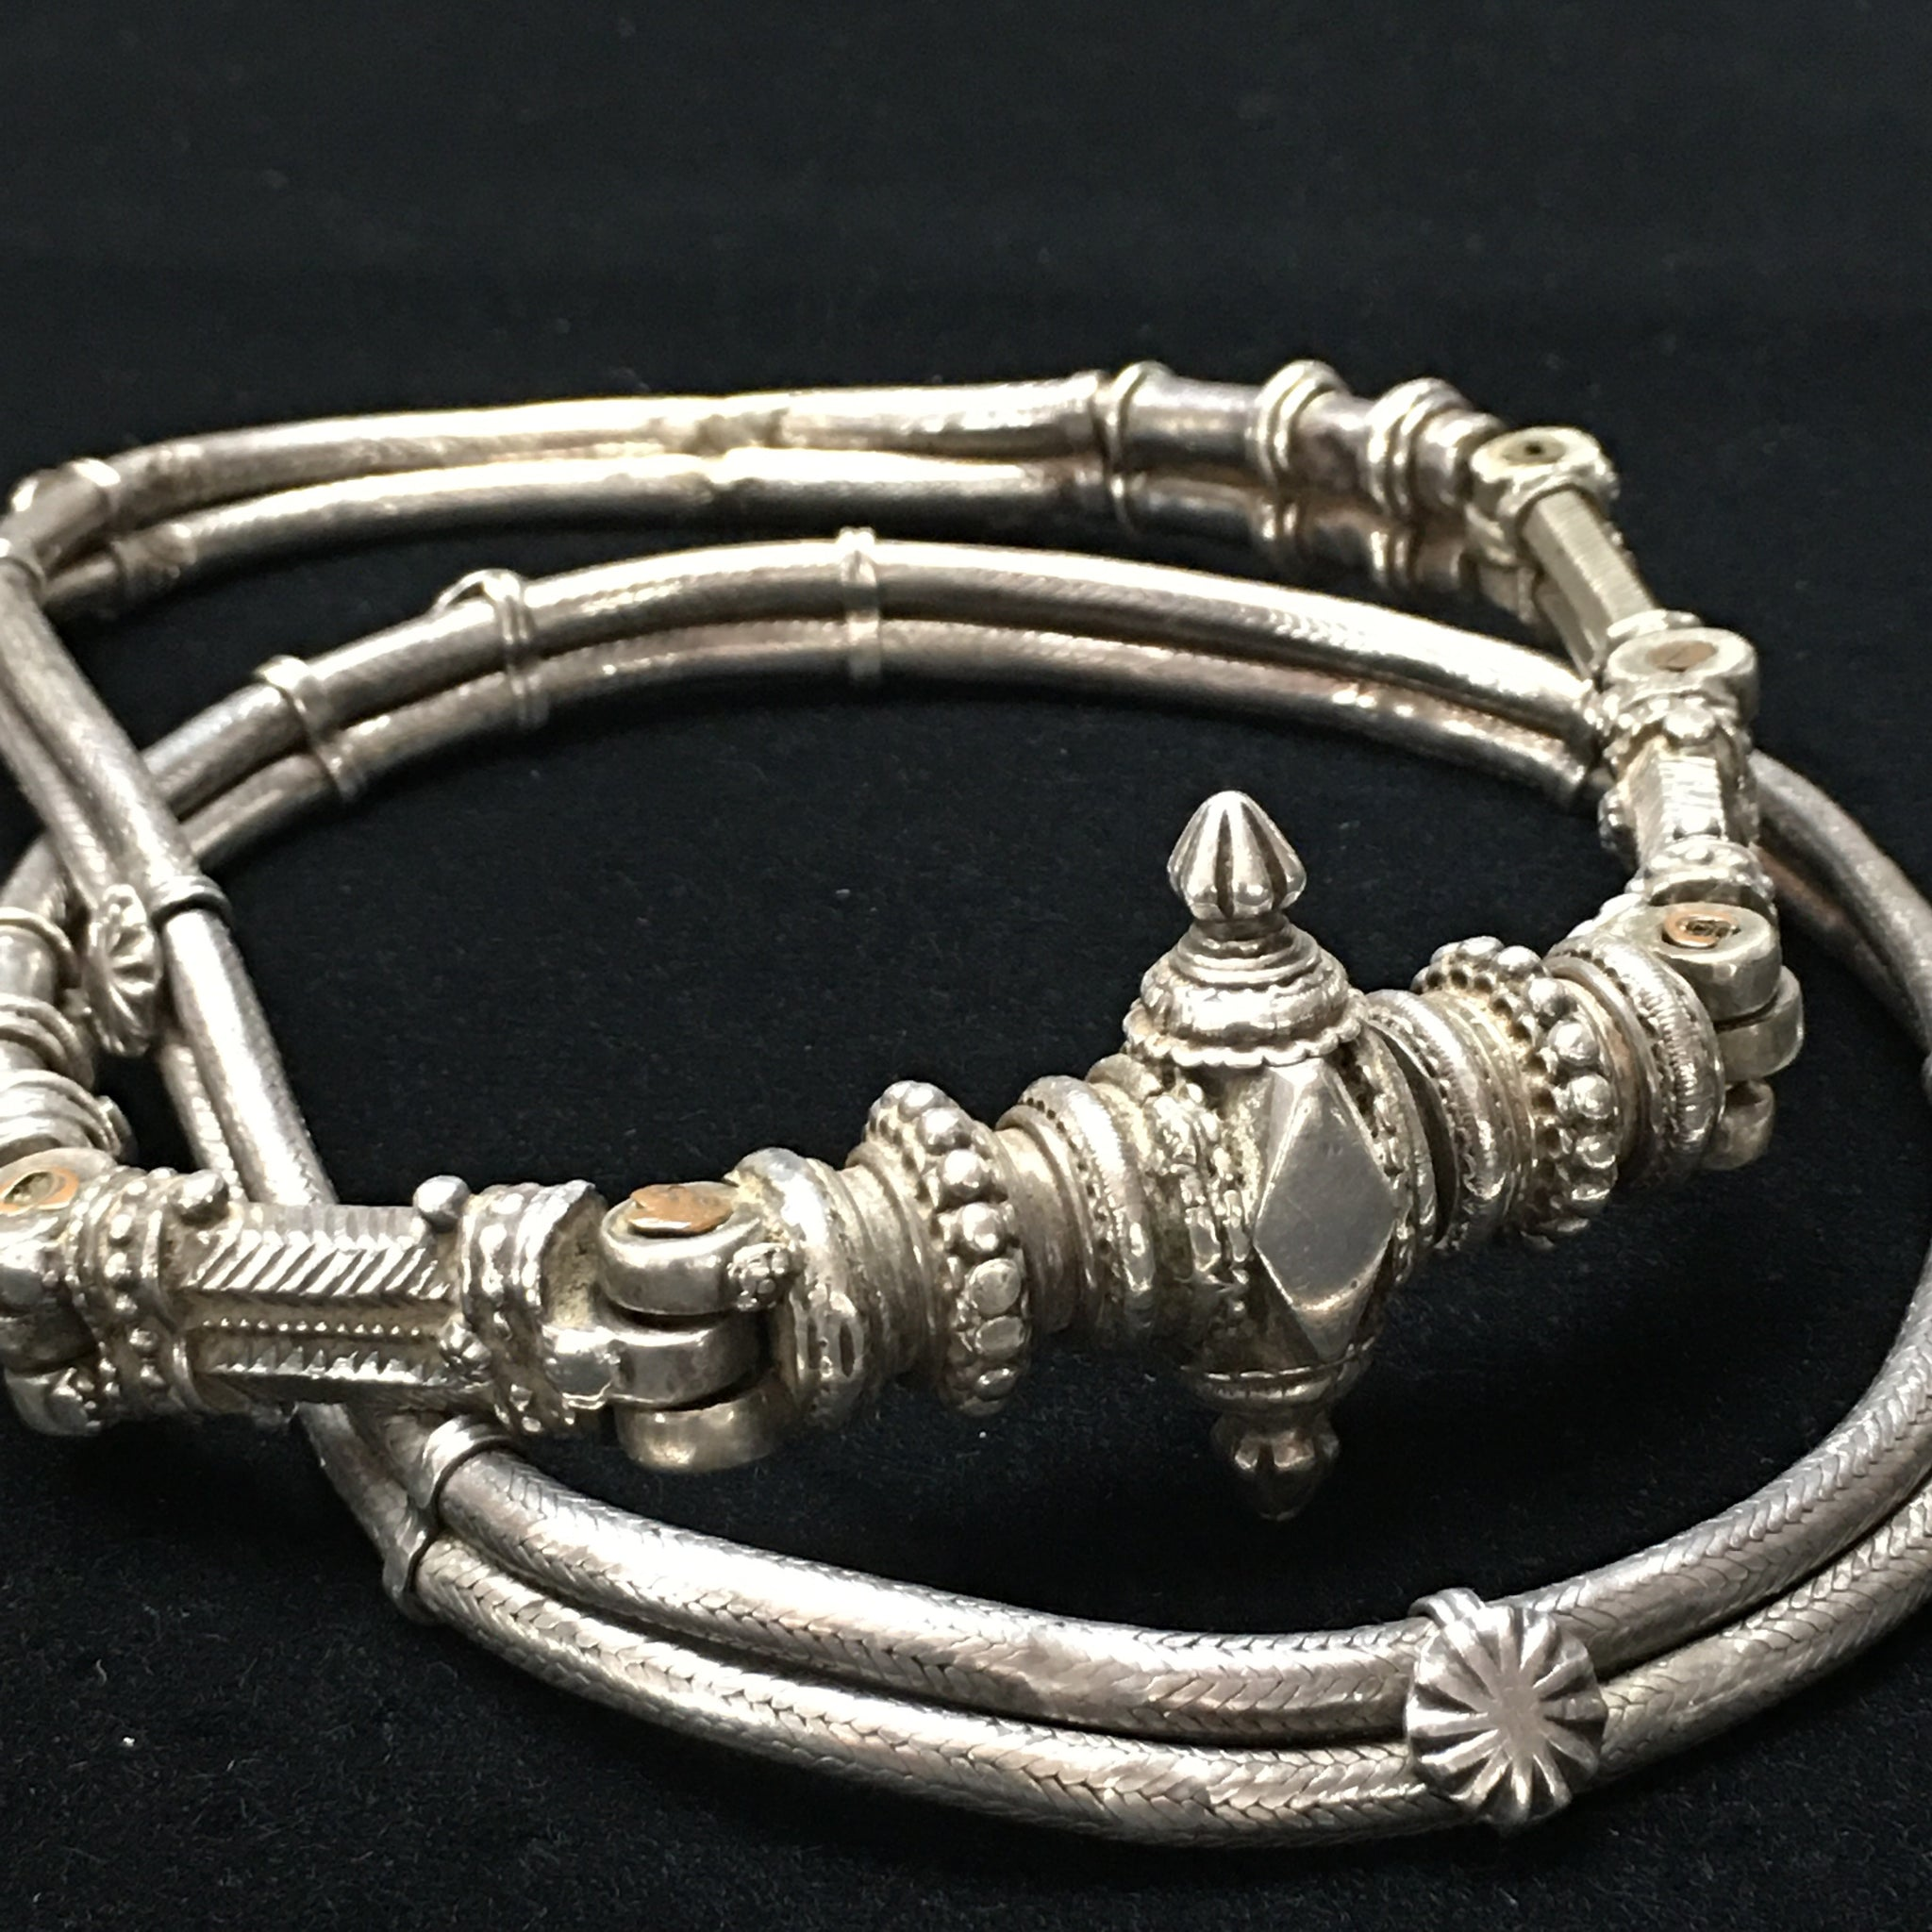 Antique Indian Tribal Silver Belt C19th